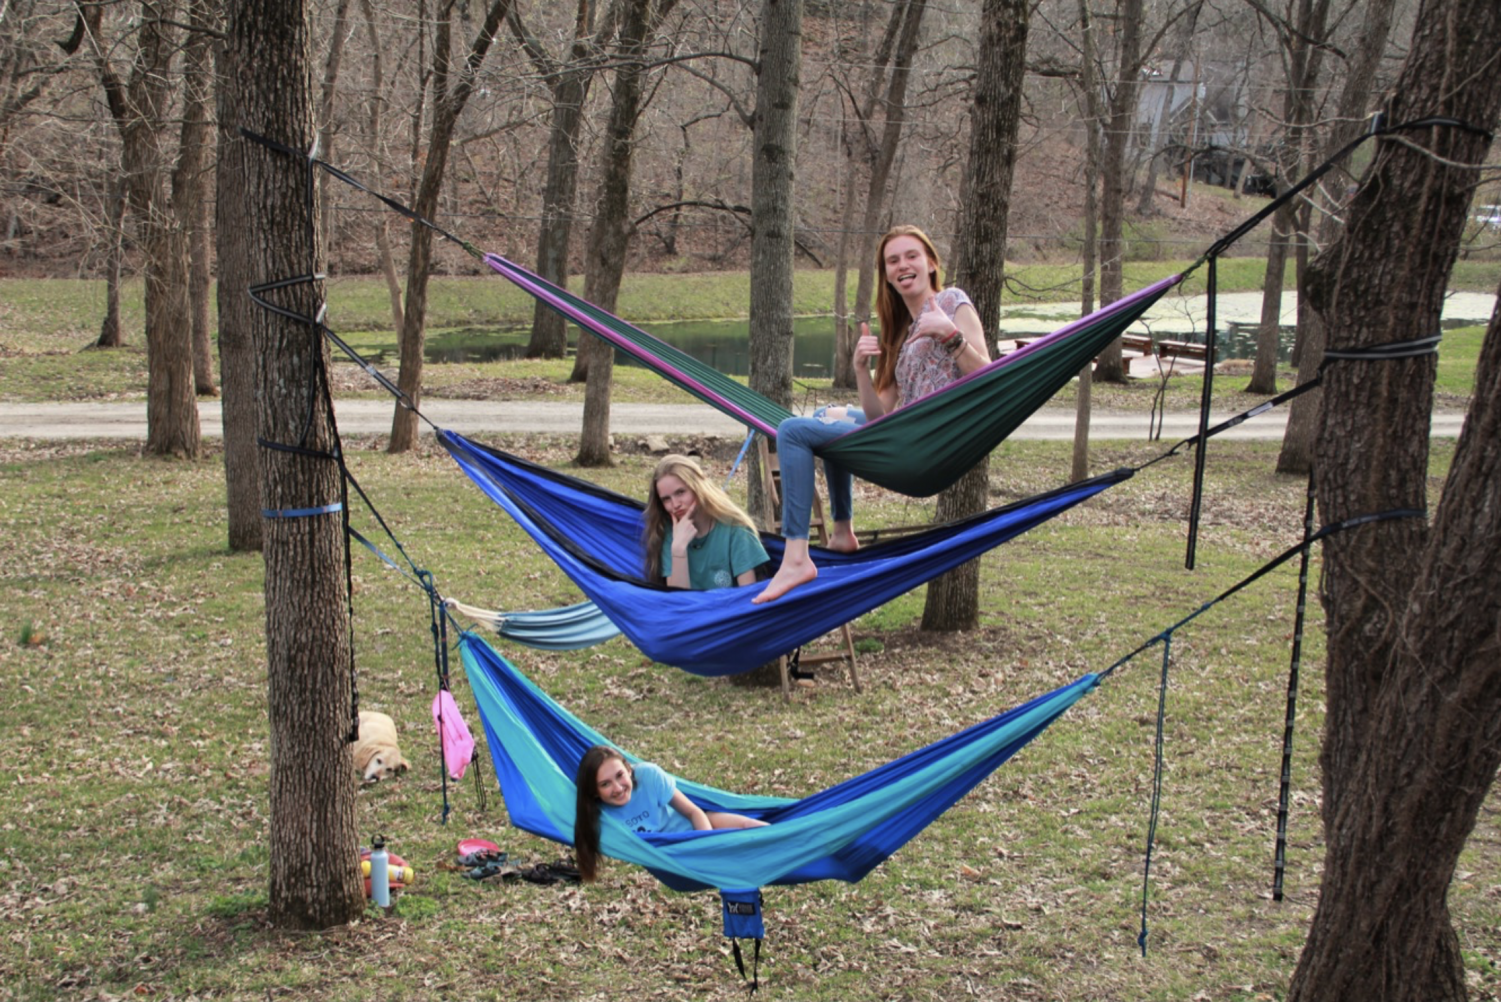 Juniors Lane Hileman, Justine Wheeler, and Erin Pickert hammock on April 7.